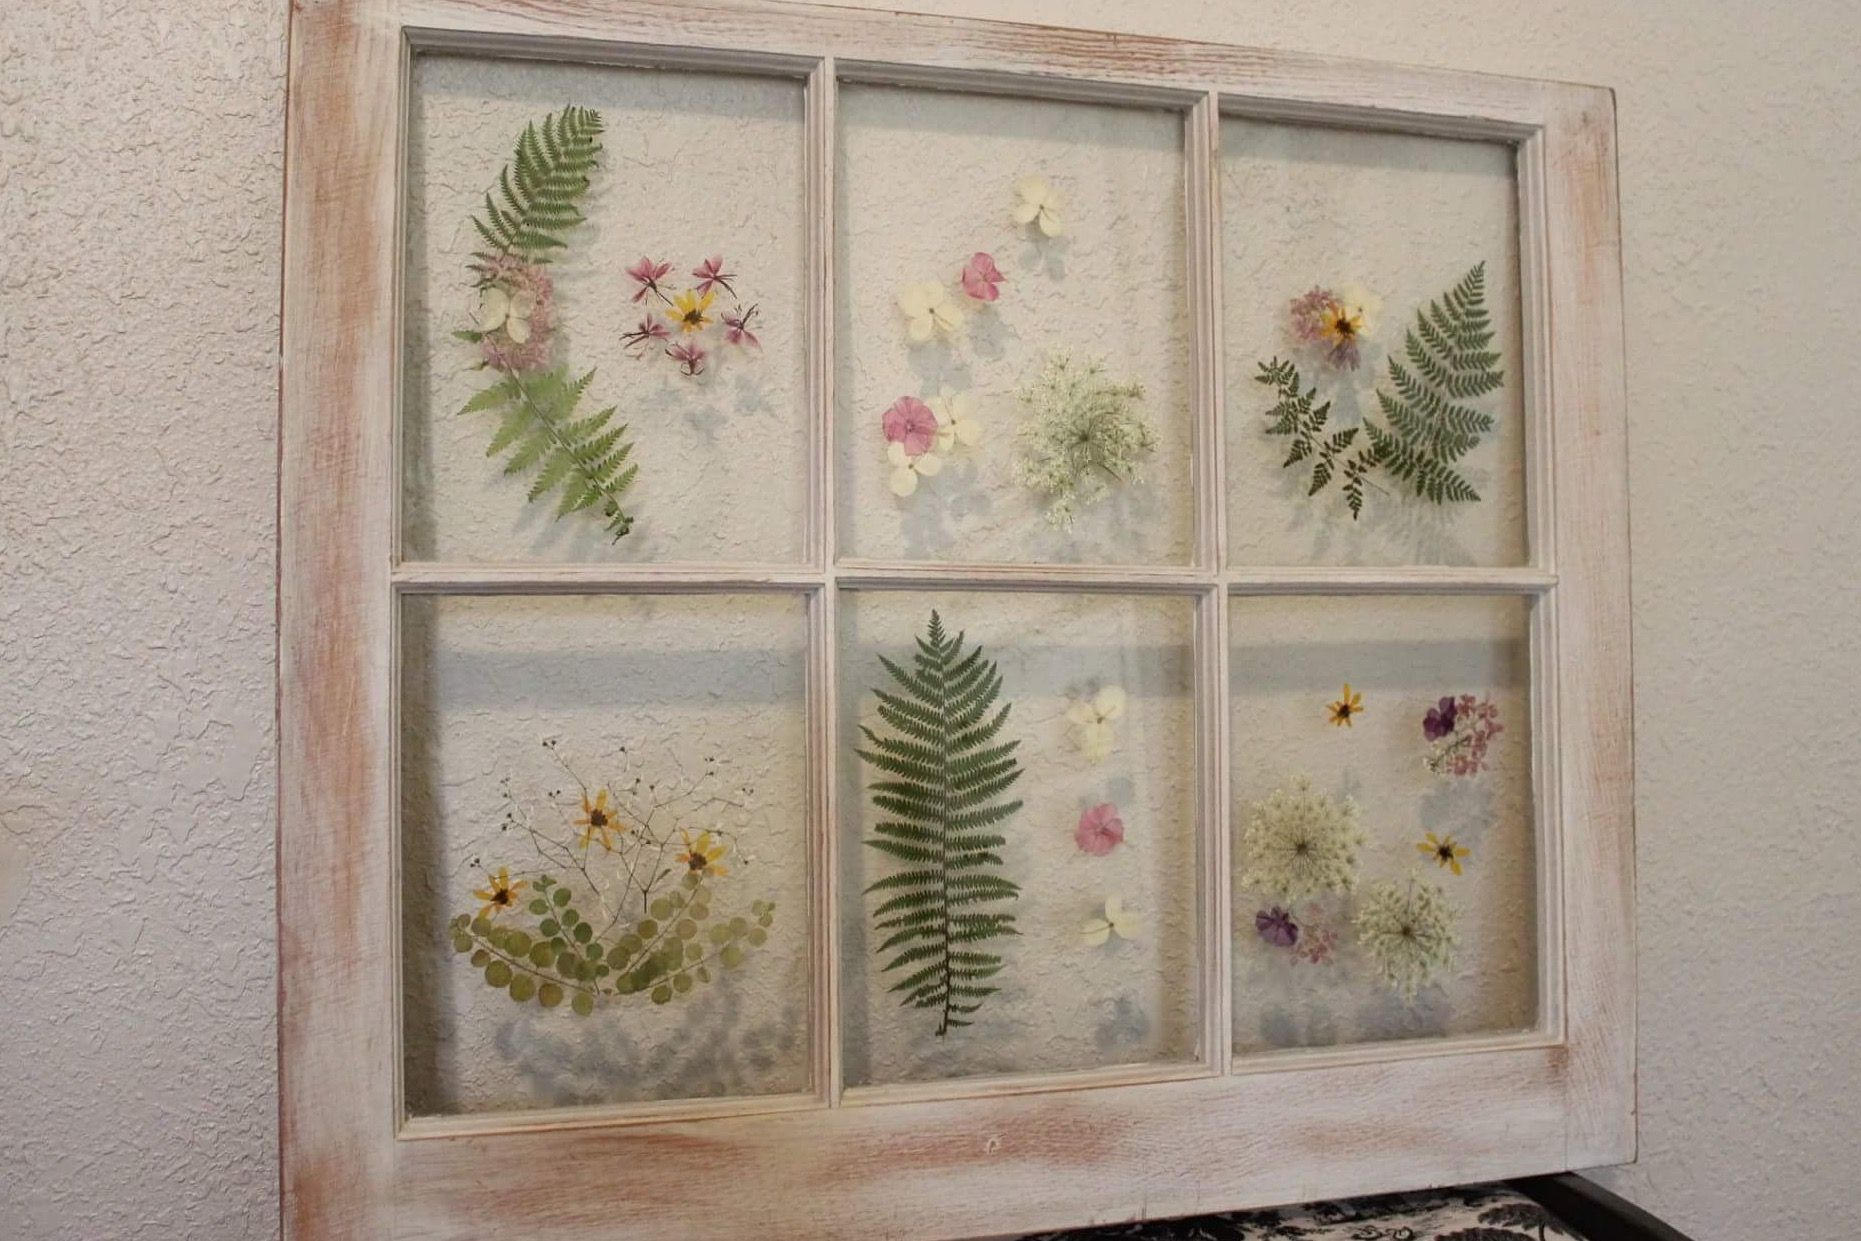 Ideas for old window frames  pressed flowers adhered to the glass of an old window frame